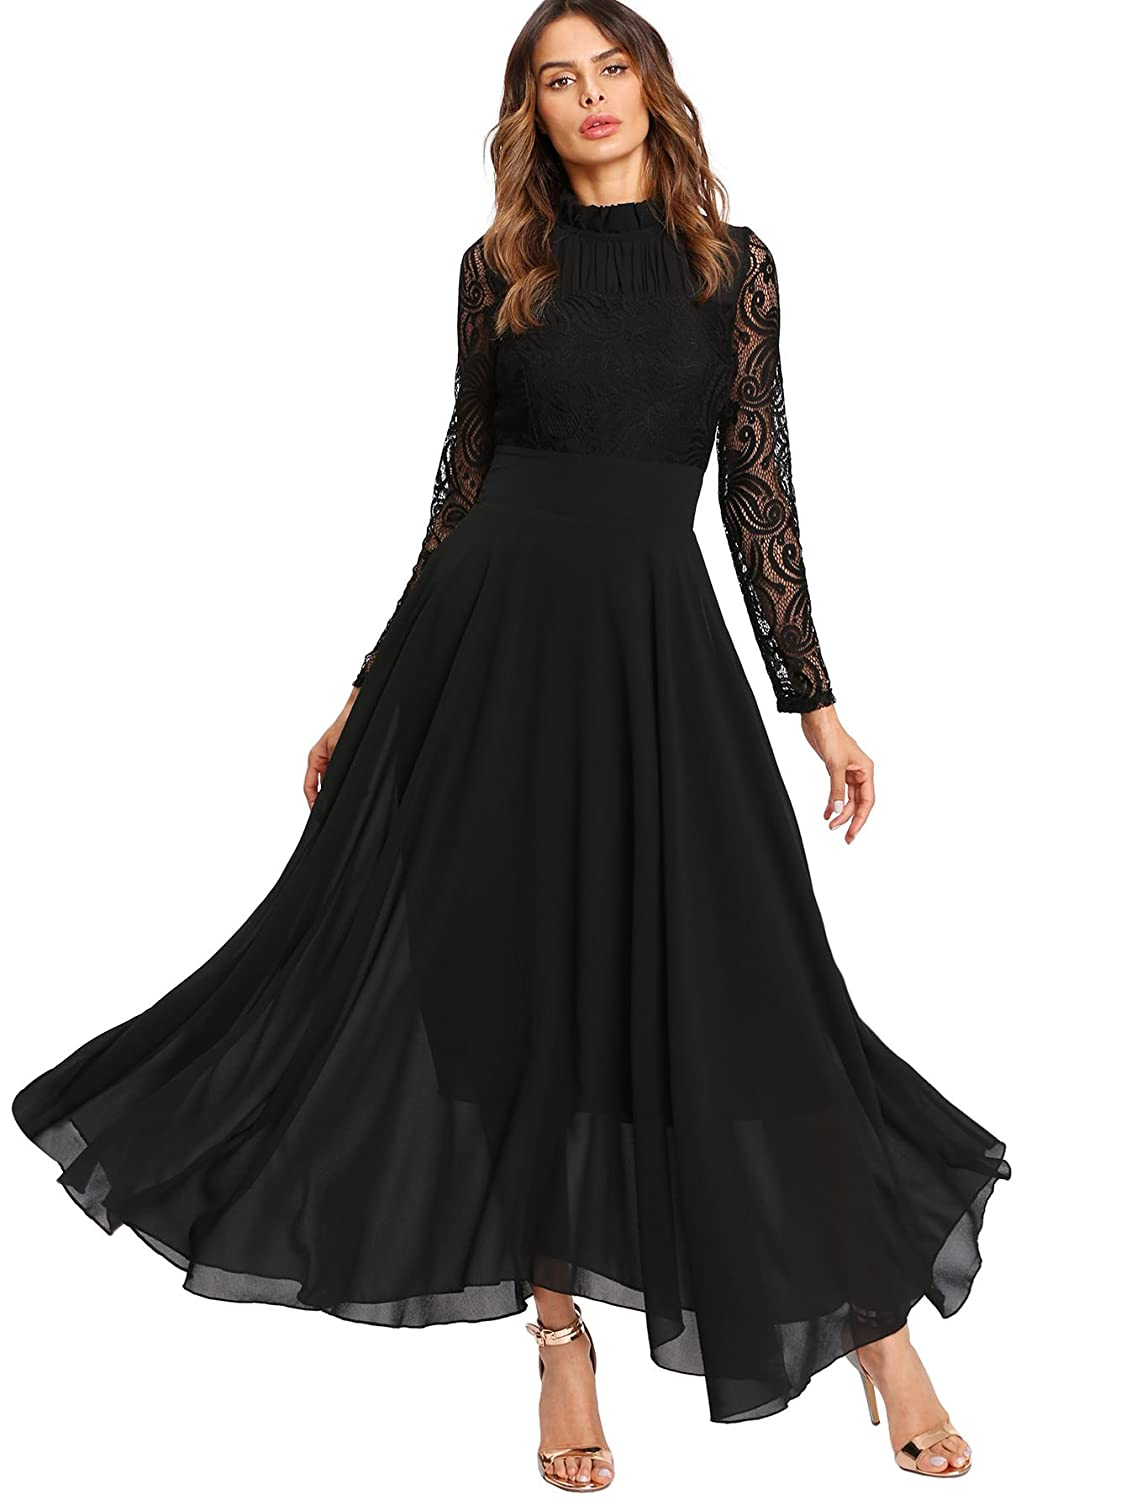 1900-1910s Clothing Milumia Womens Vintage Floral Lace Long Sleeve Ruched Neck Flowy Long Dress $28.99 AT vintagedancer.com